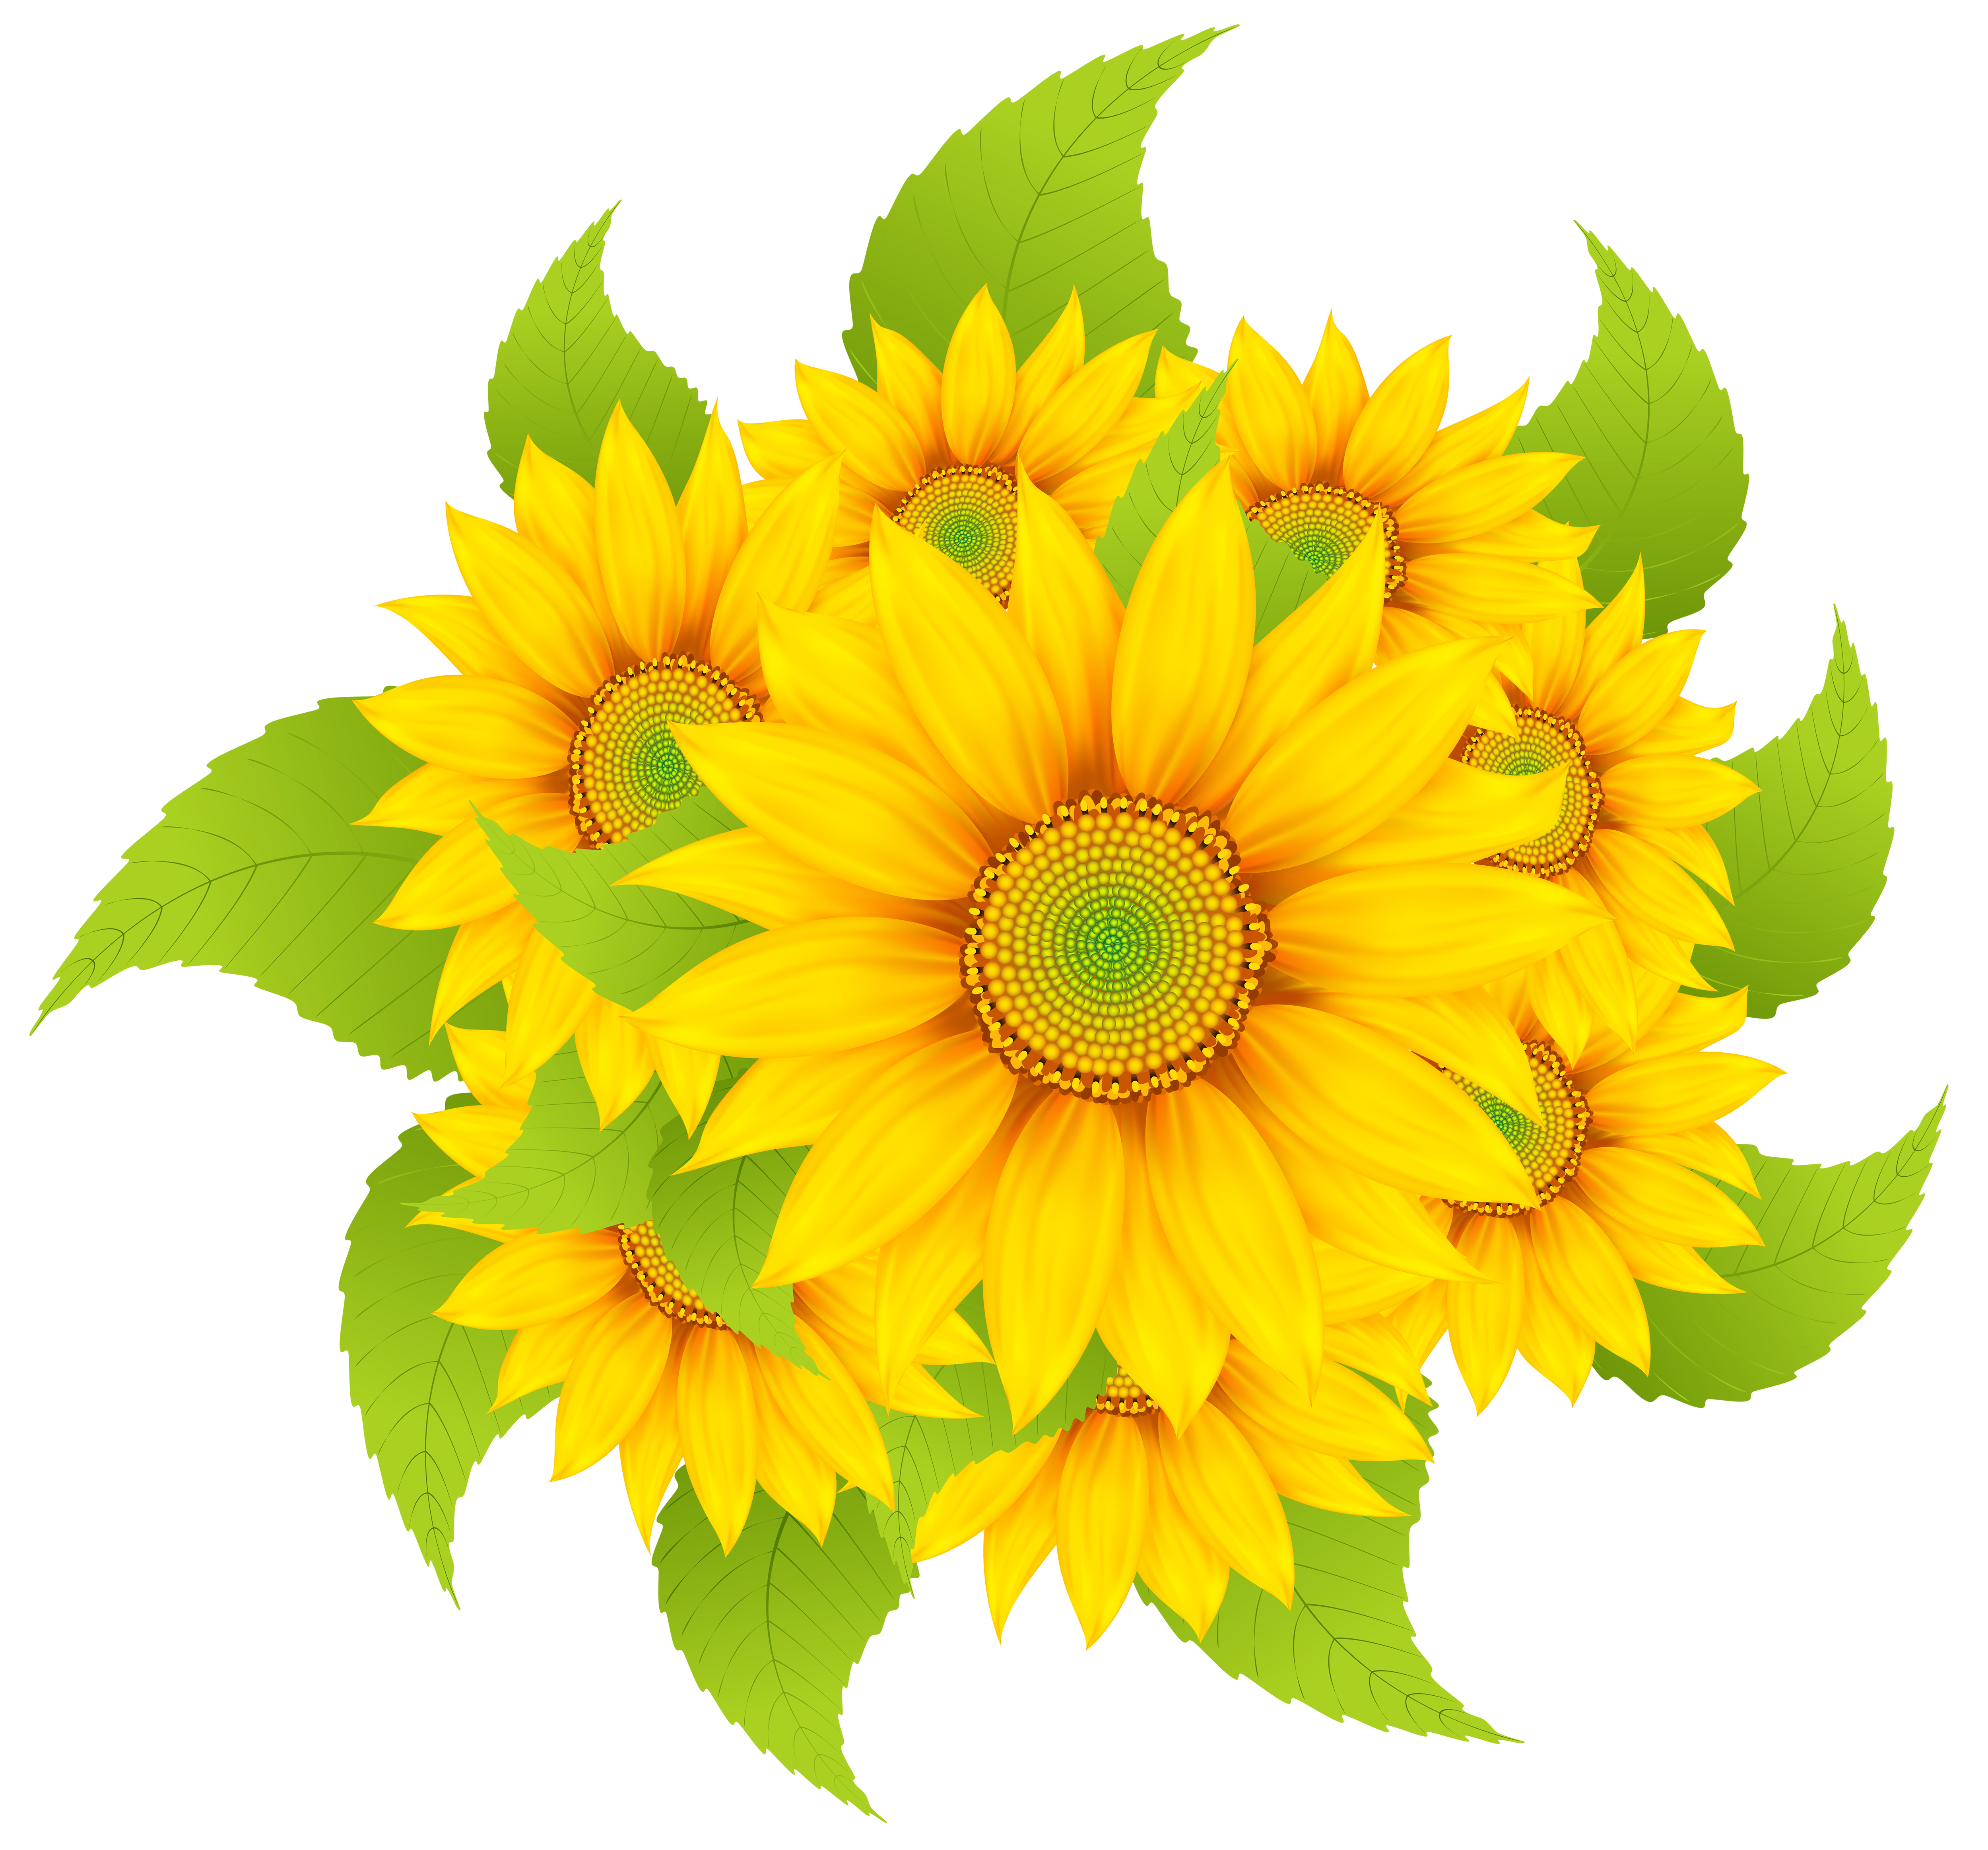 Flower seed clipart clipart free stock Sunflowers Decoration Clipart PNG Image | Gallery Yopriceville ... clipart free stock